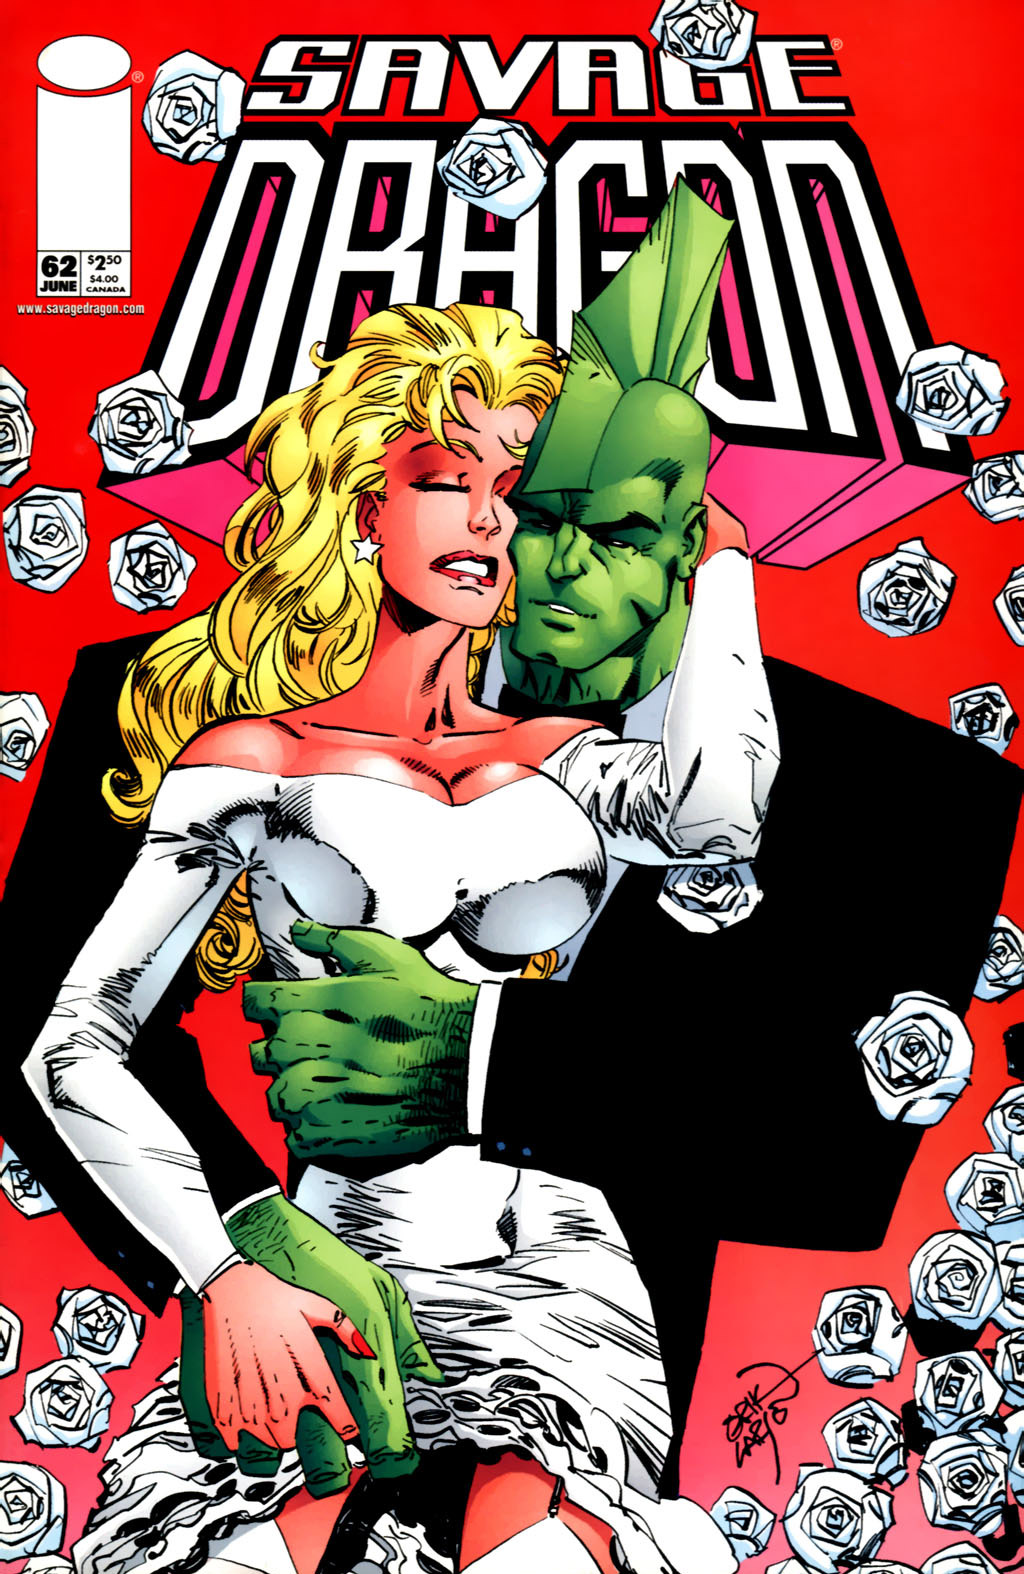 Cover Savage Dragon Vol.2 #62